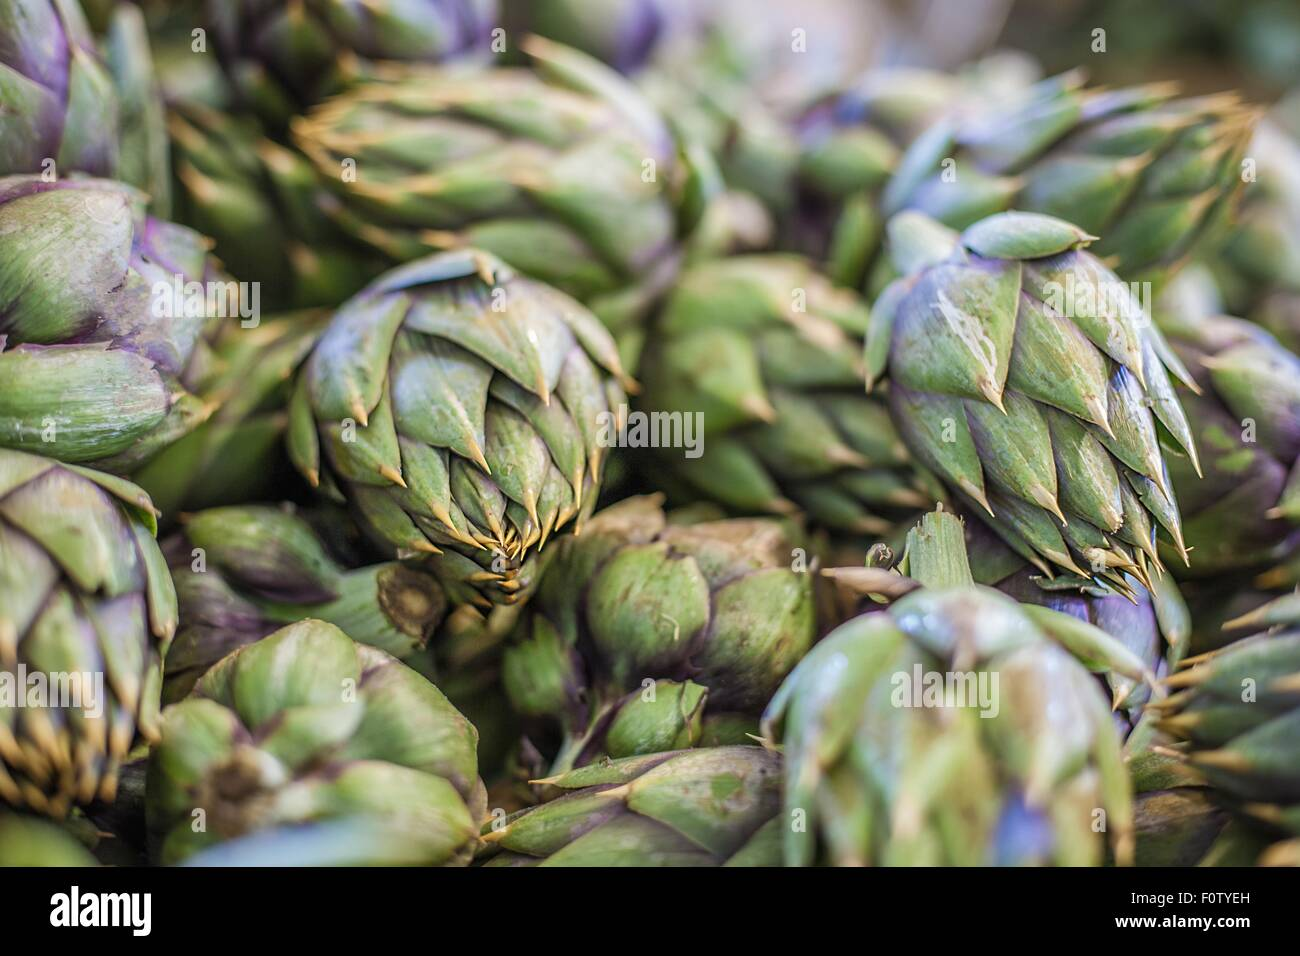 Pile of artichokes, full frame, close-up - Stock Image